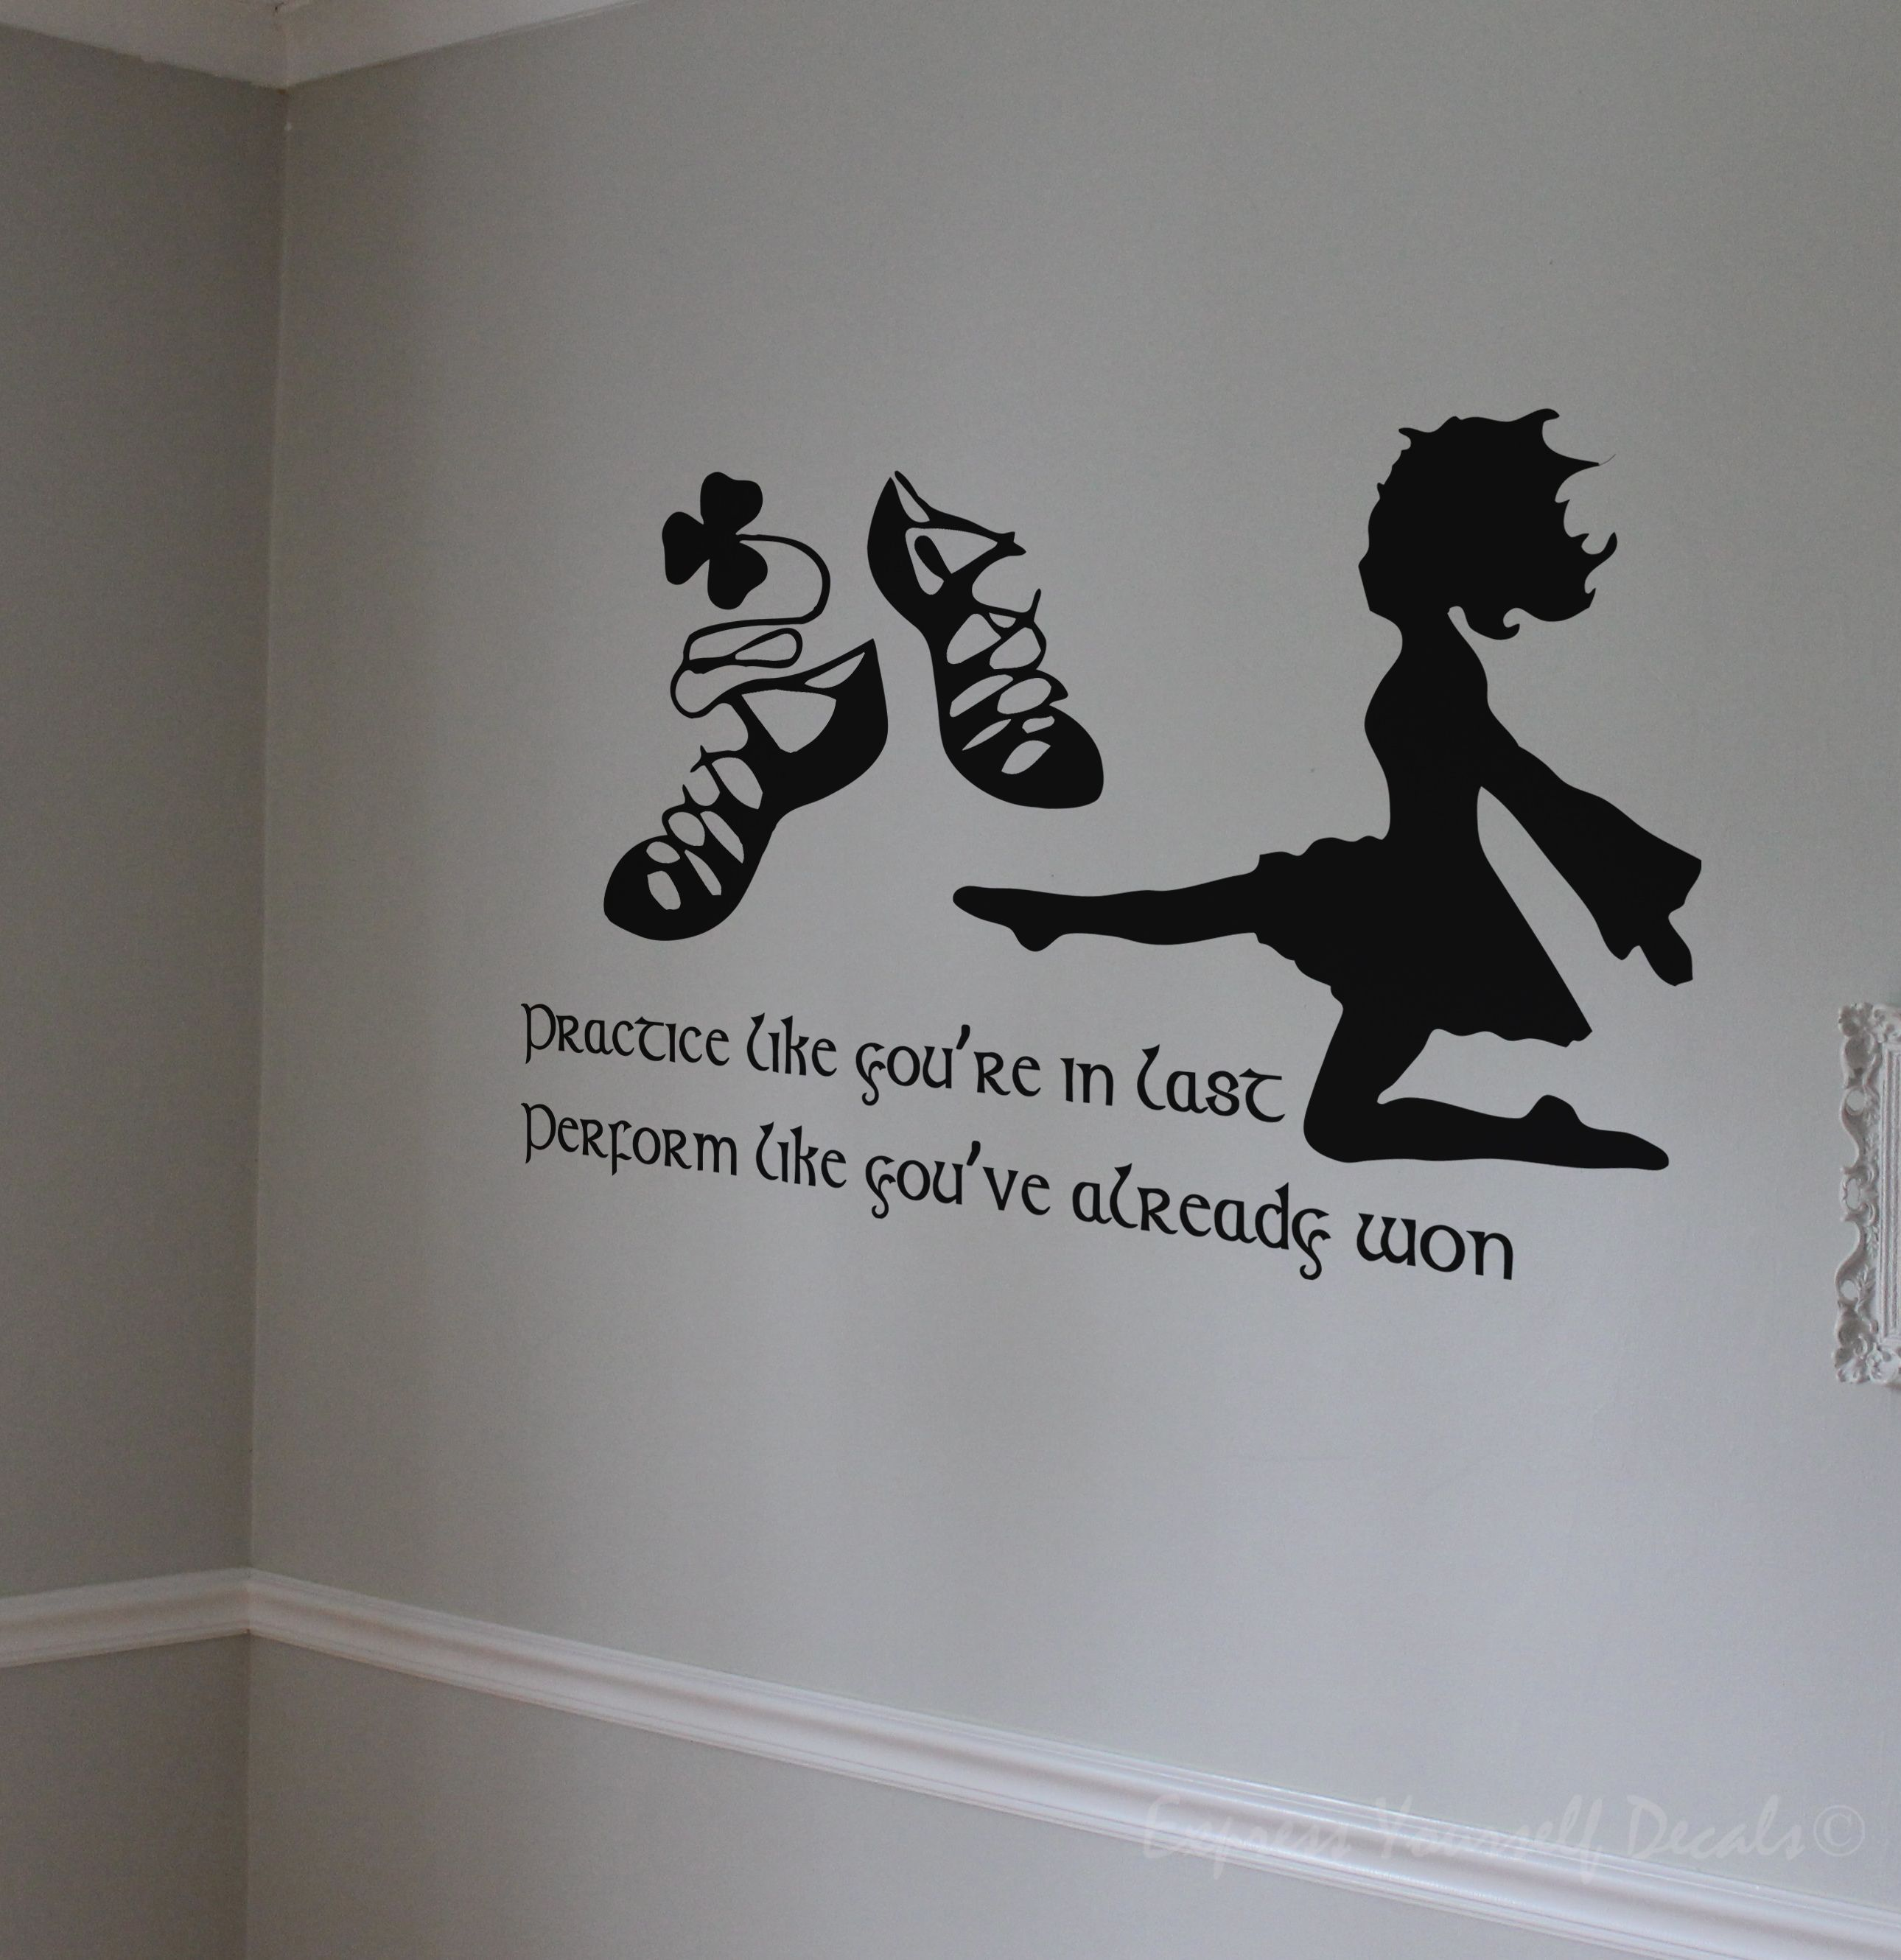 Irish Dance Practice Wall Decal Wall Decal Wall Art Decal Dance Wall Art Irish Dance Irish Dance Quotes